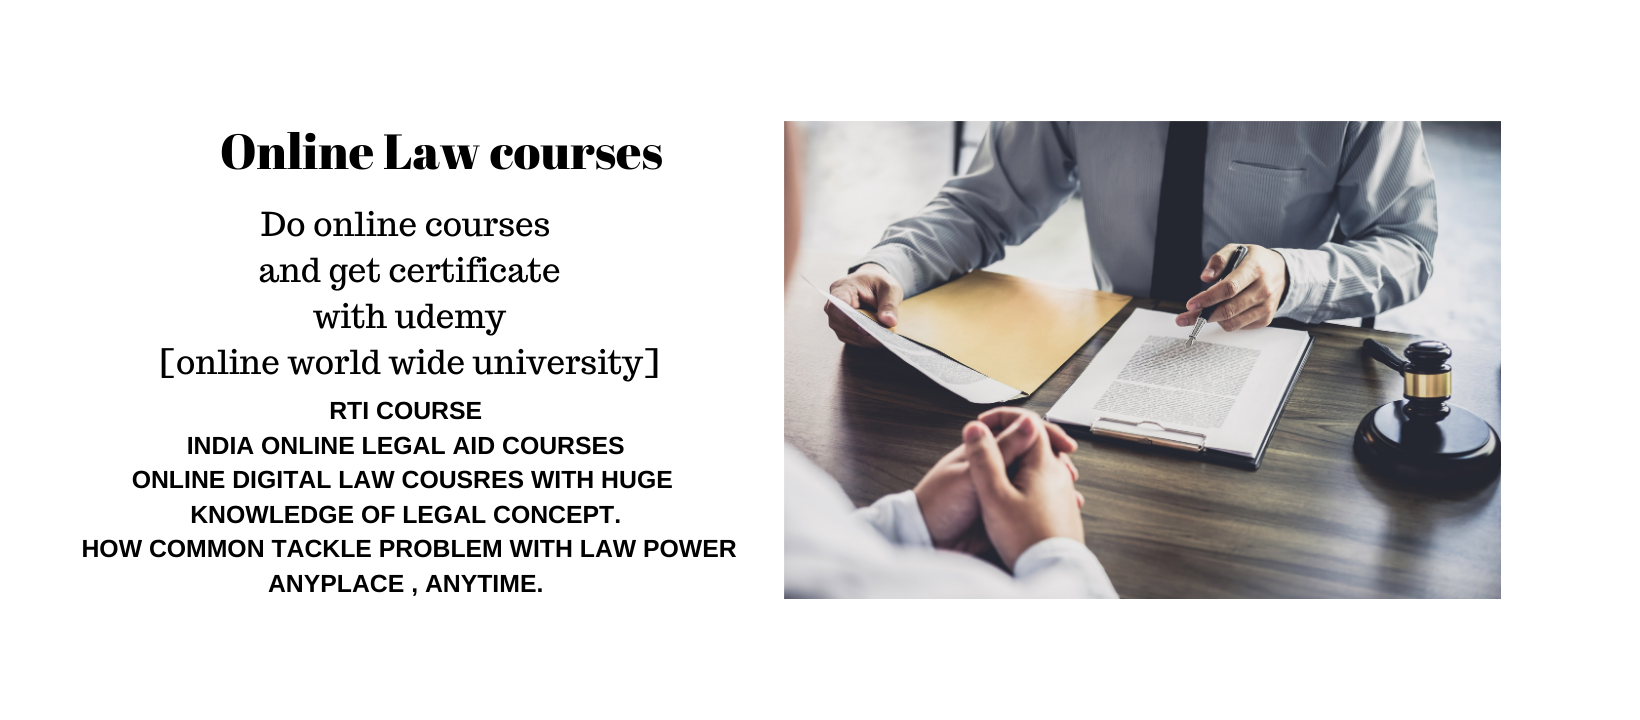 ONLINE LAW COURSES WITH CERTIFICATE BY ONLINE WORLD WIDE UNIVERSITY [UDEMY]